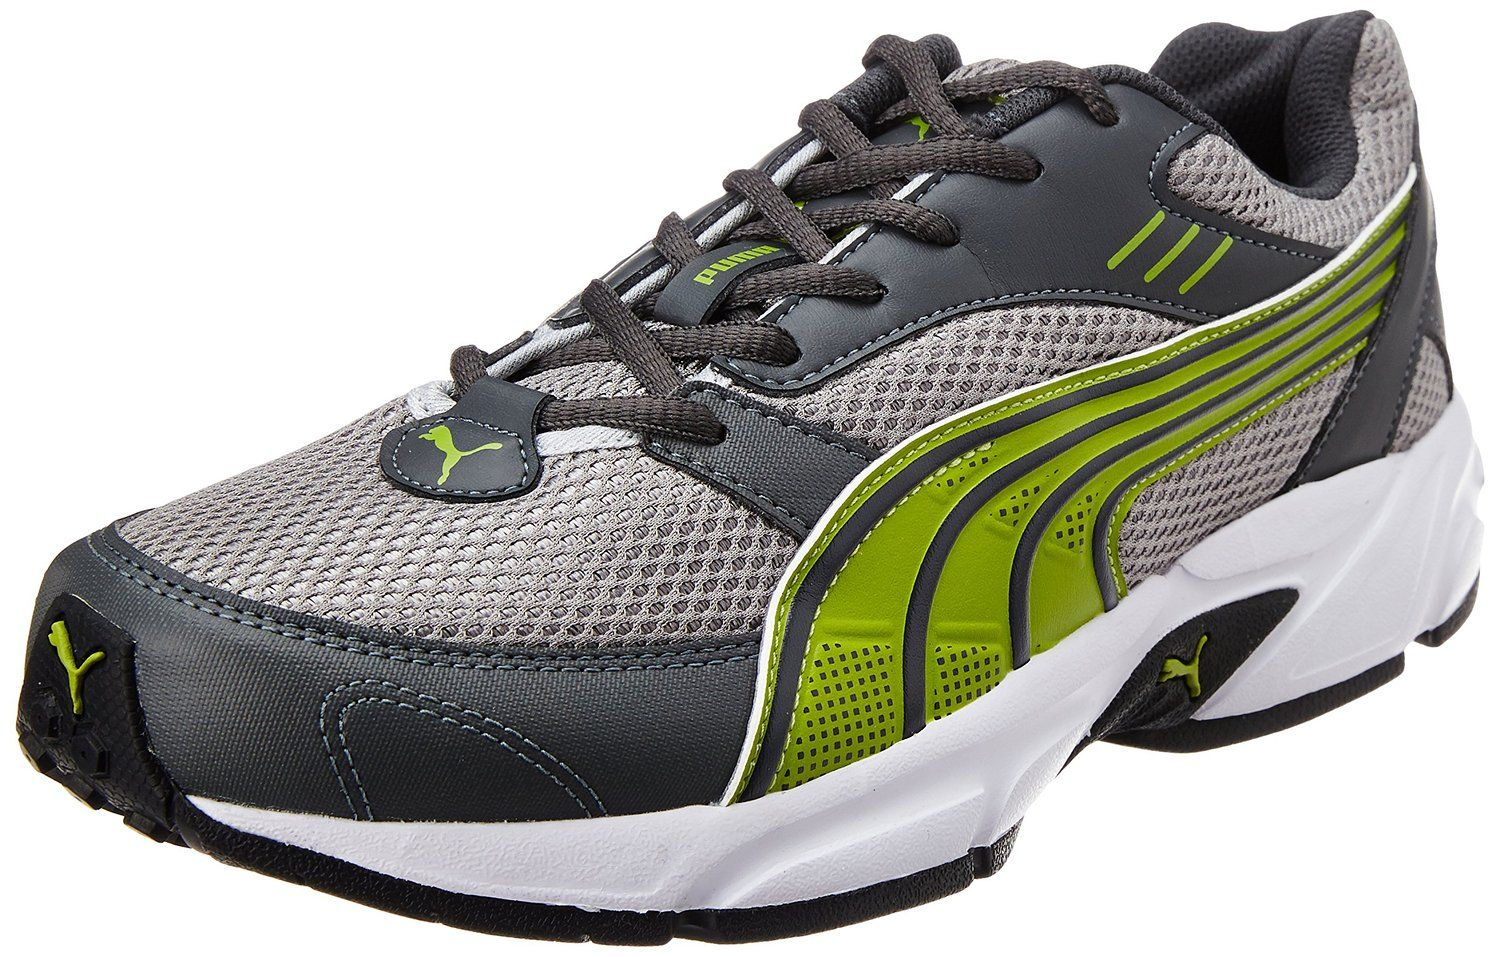 Top 10 Puma Running Shoes For Men In India Puma Running Shoes